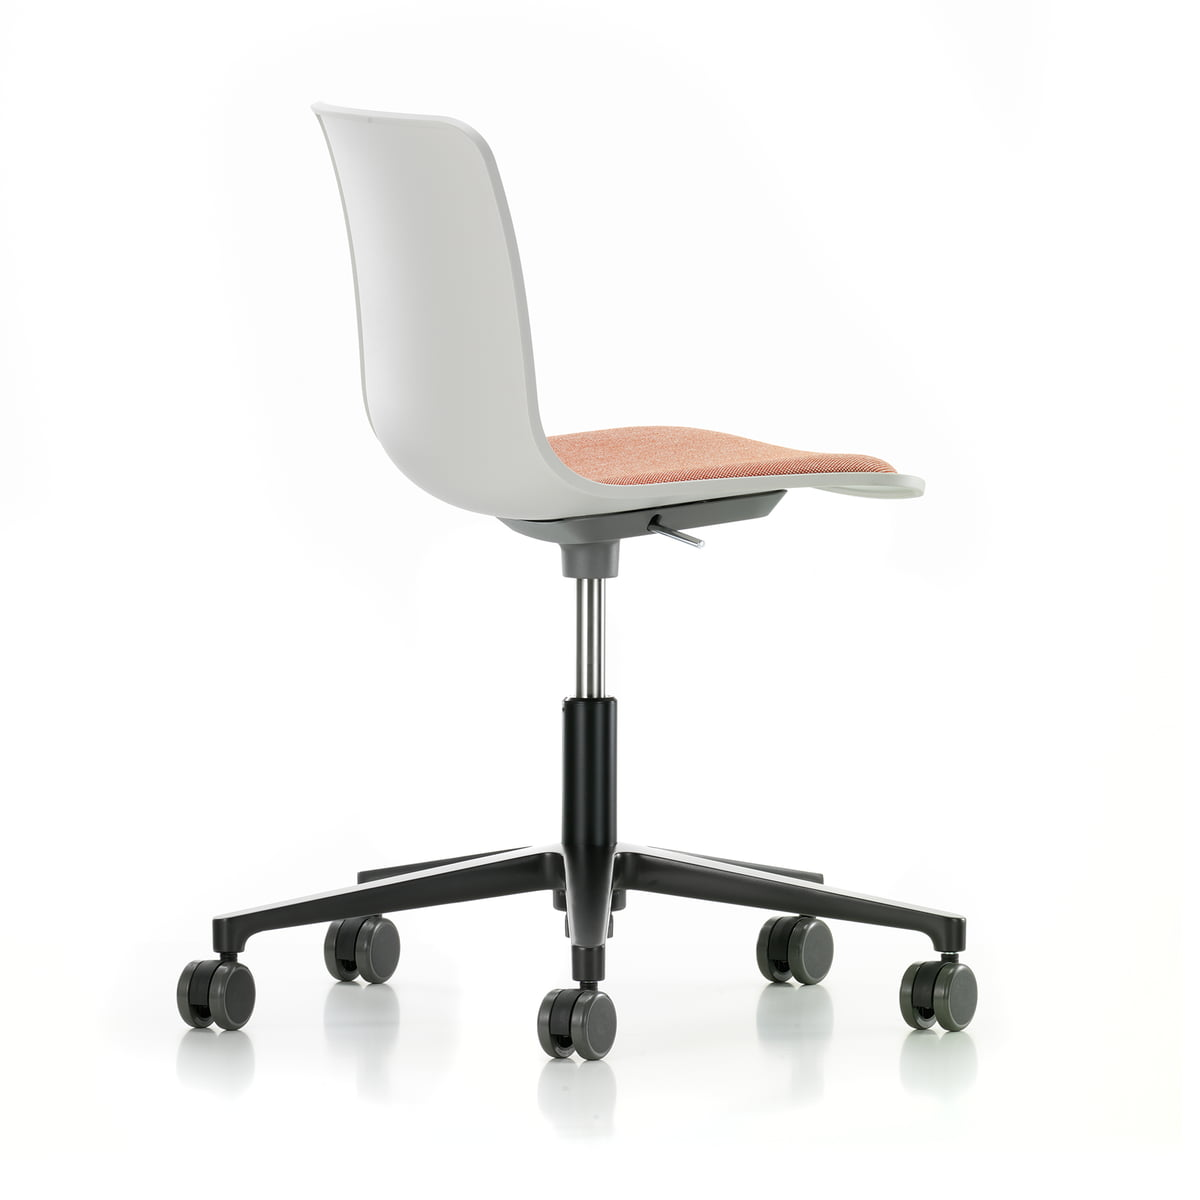 hal studio office chair from vitra online. Black Bedroom Furniture Sets. Home Design Ideas